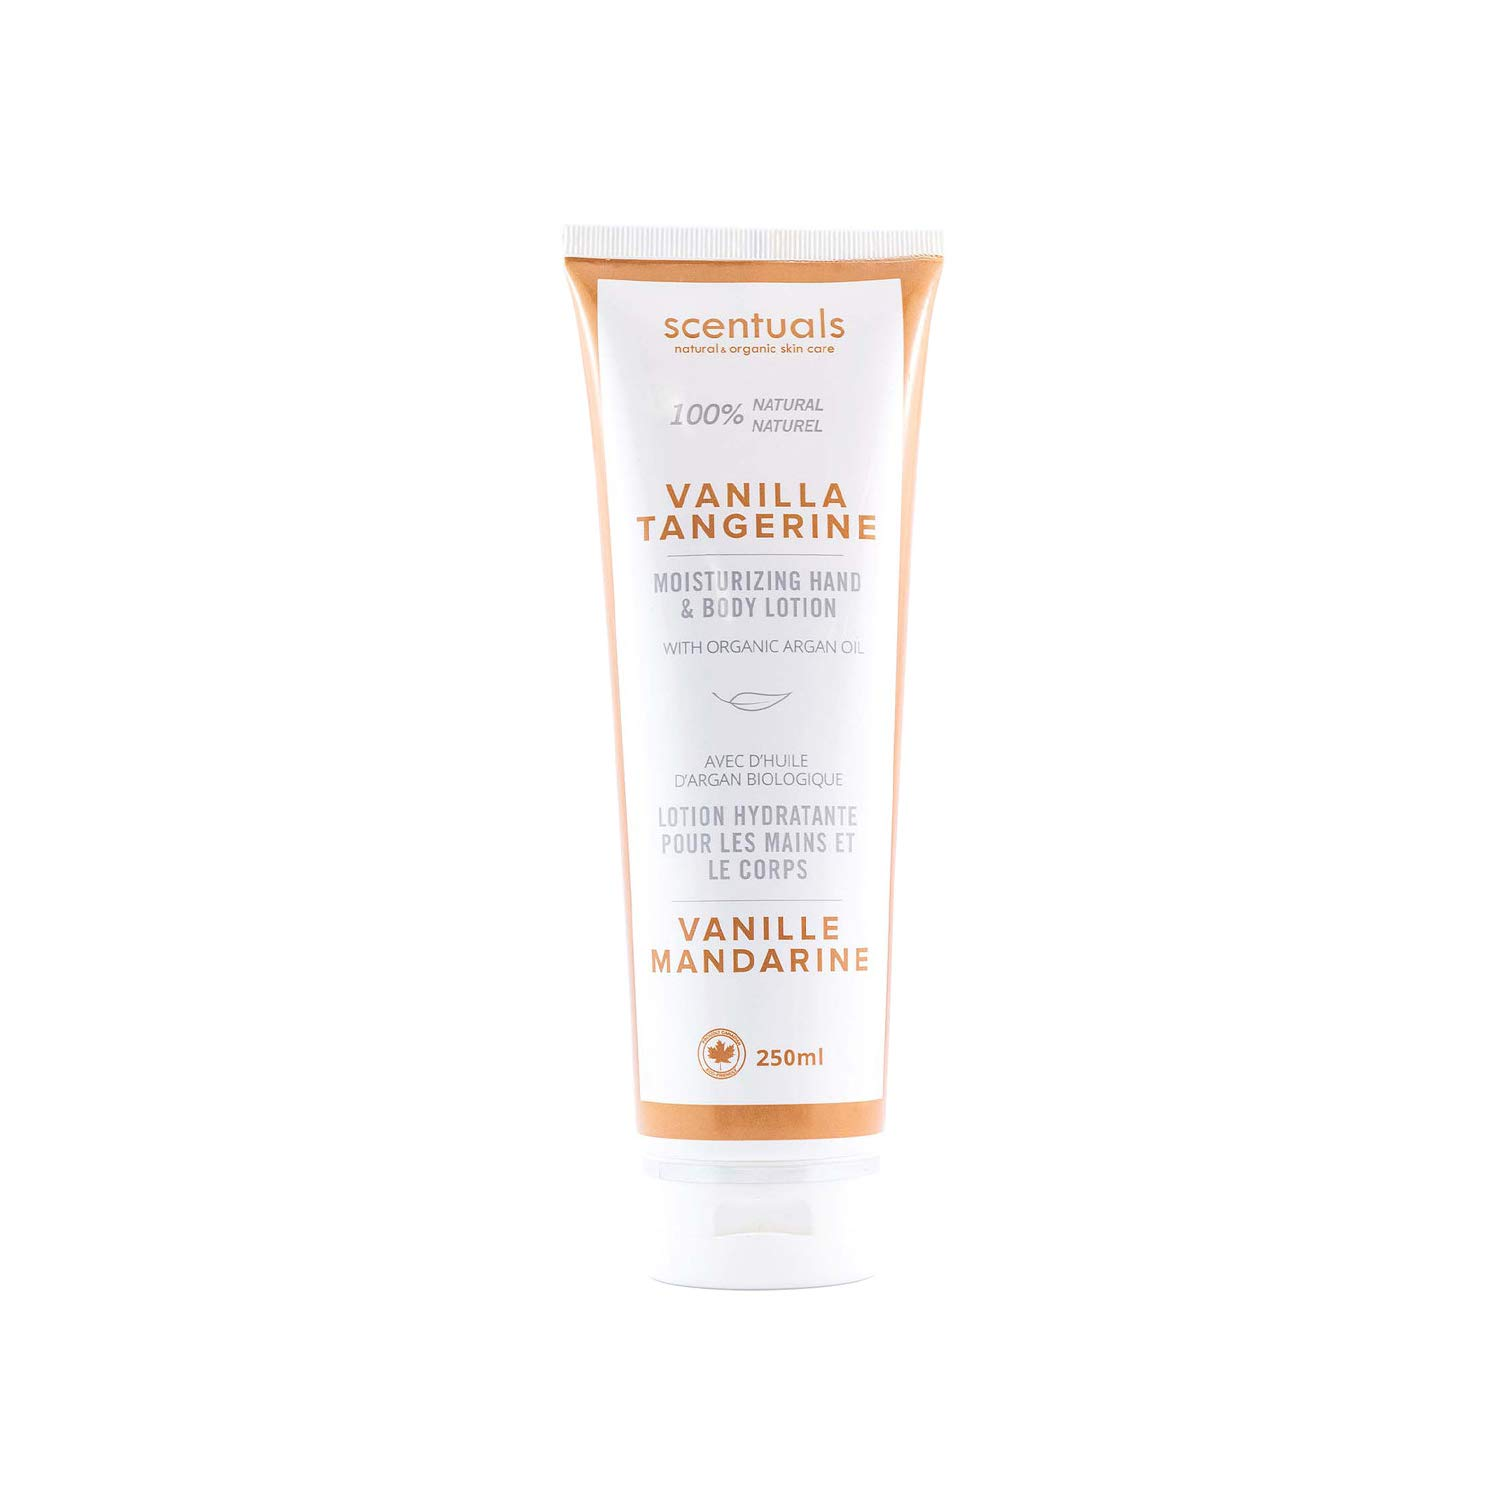 Scentuals 100% Natural Vanilla Tangerine Hand & Body Lotion, White, 8.45 Fluid Ounce